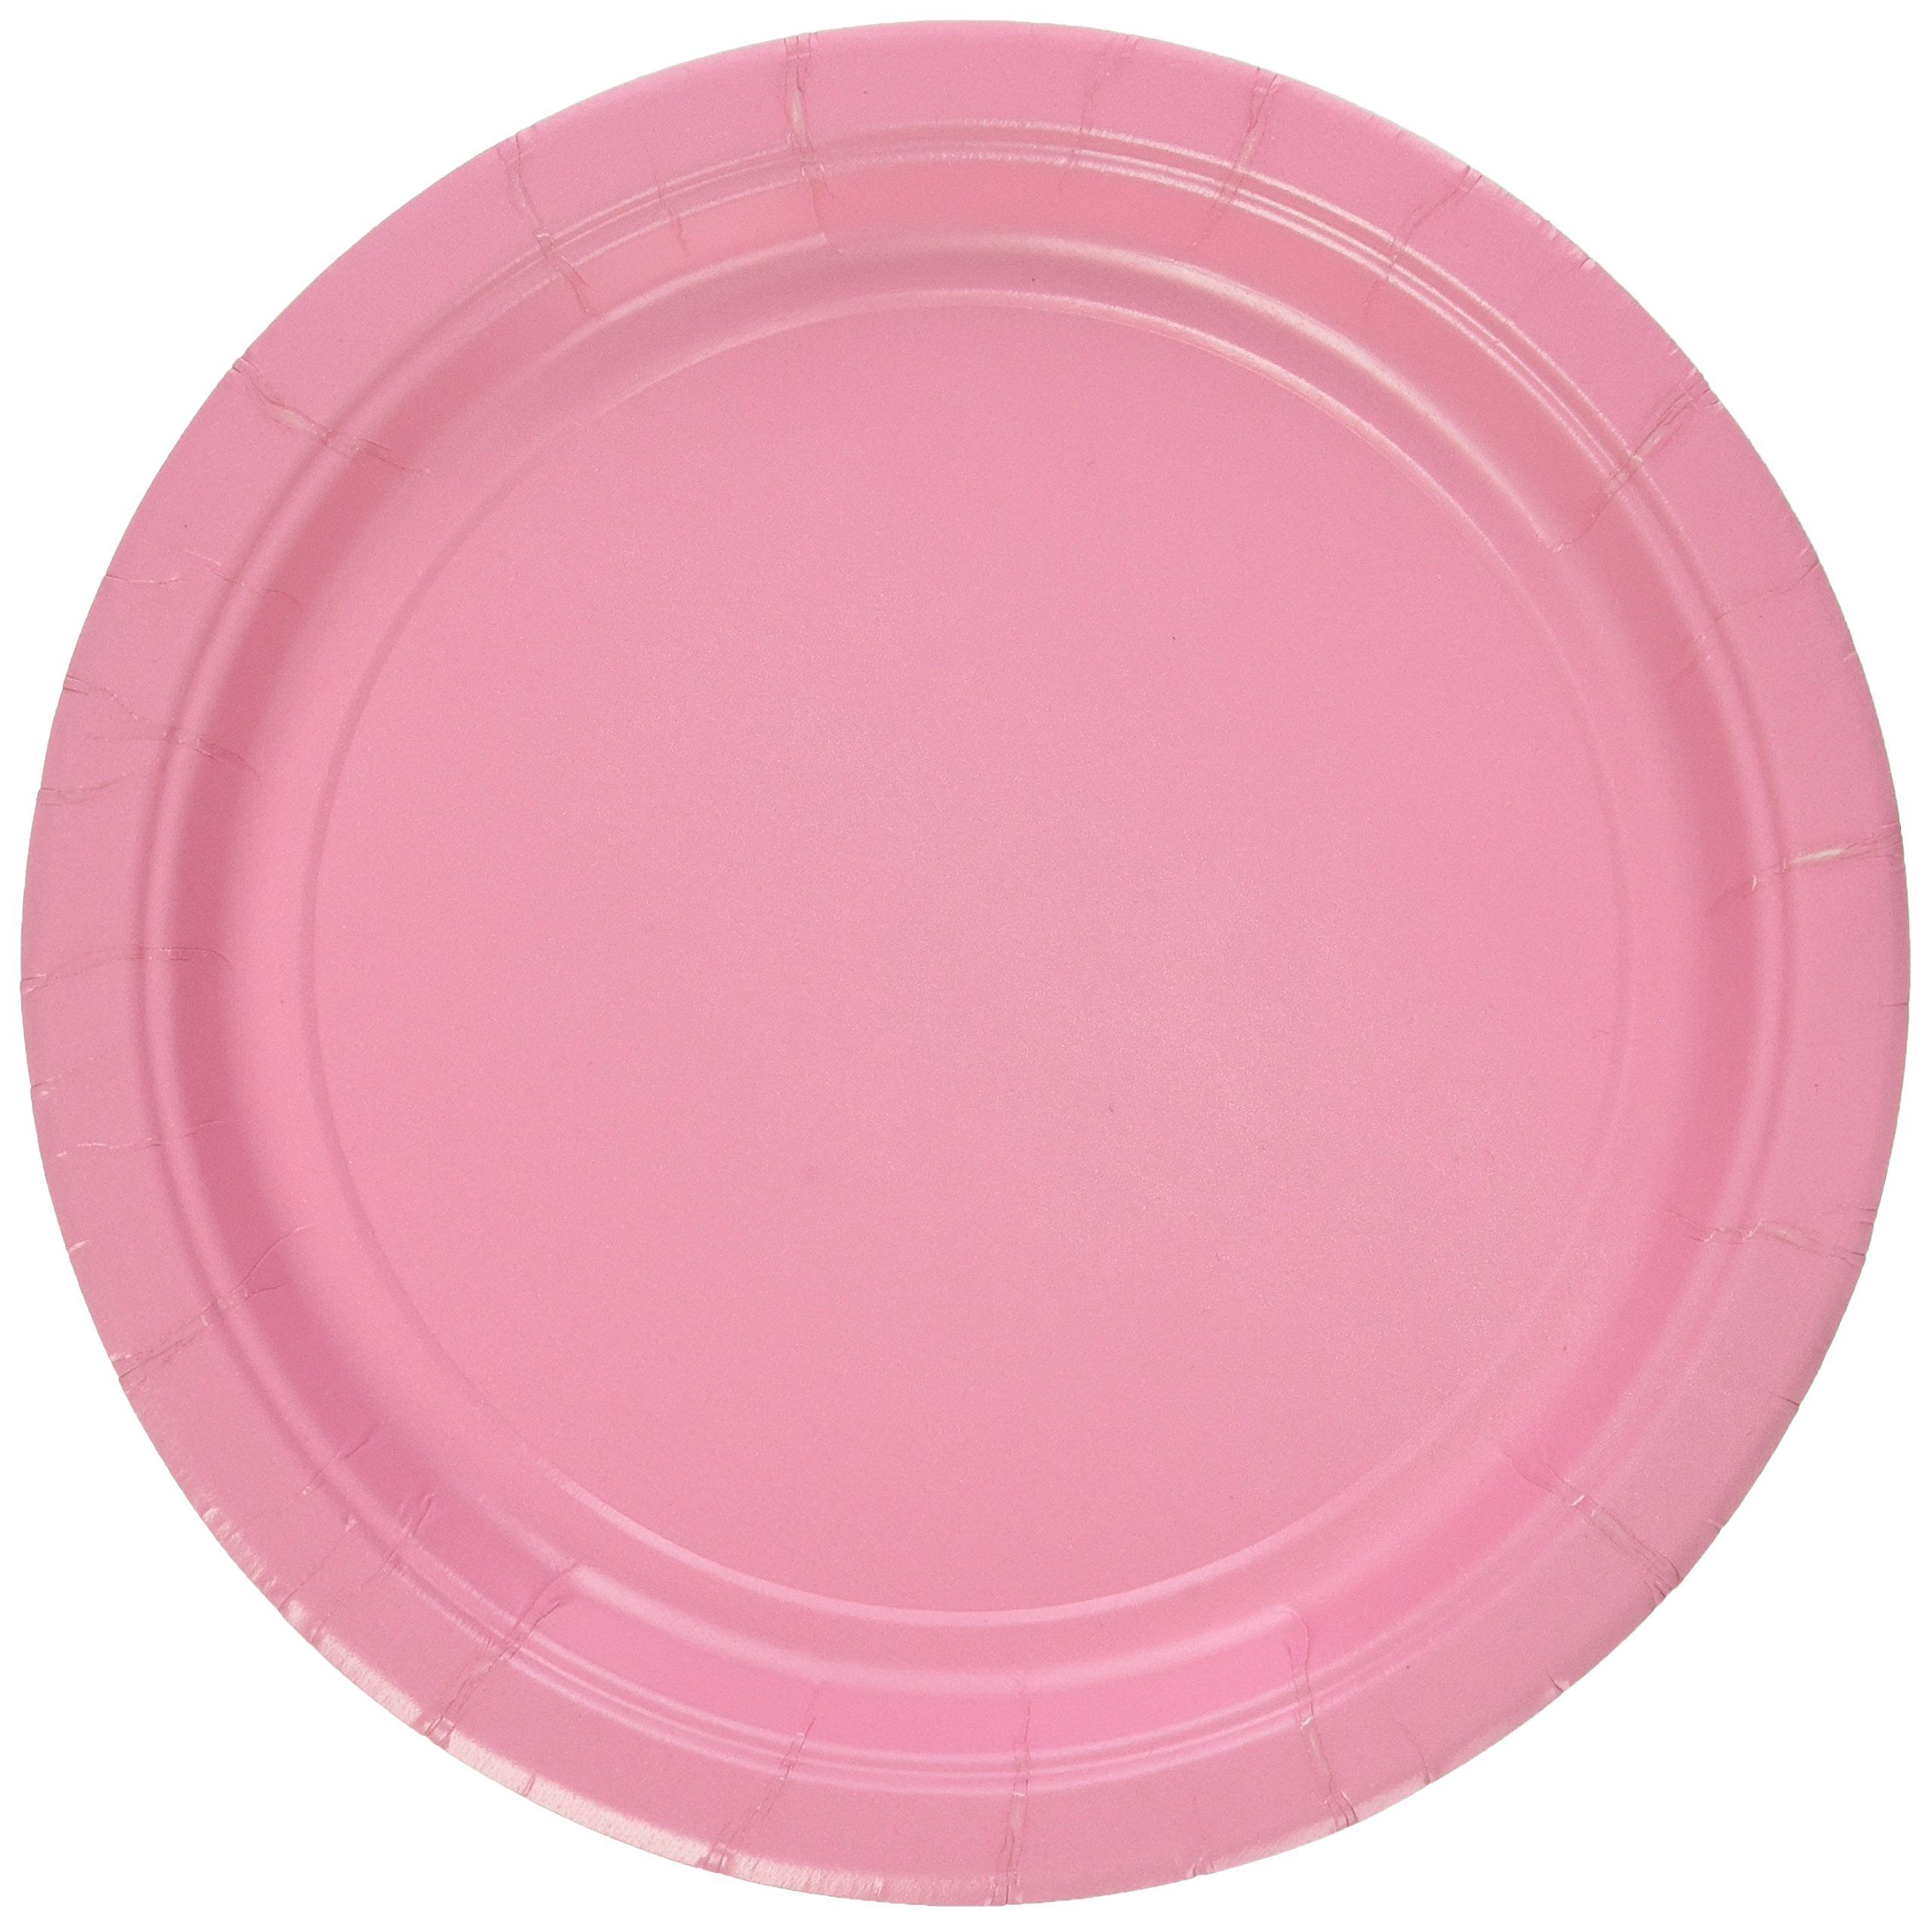 Amscan New Pink Paper Plate Big Party Pack 50 Ct Ad Paper